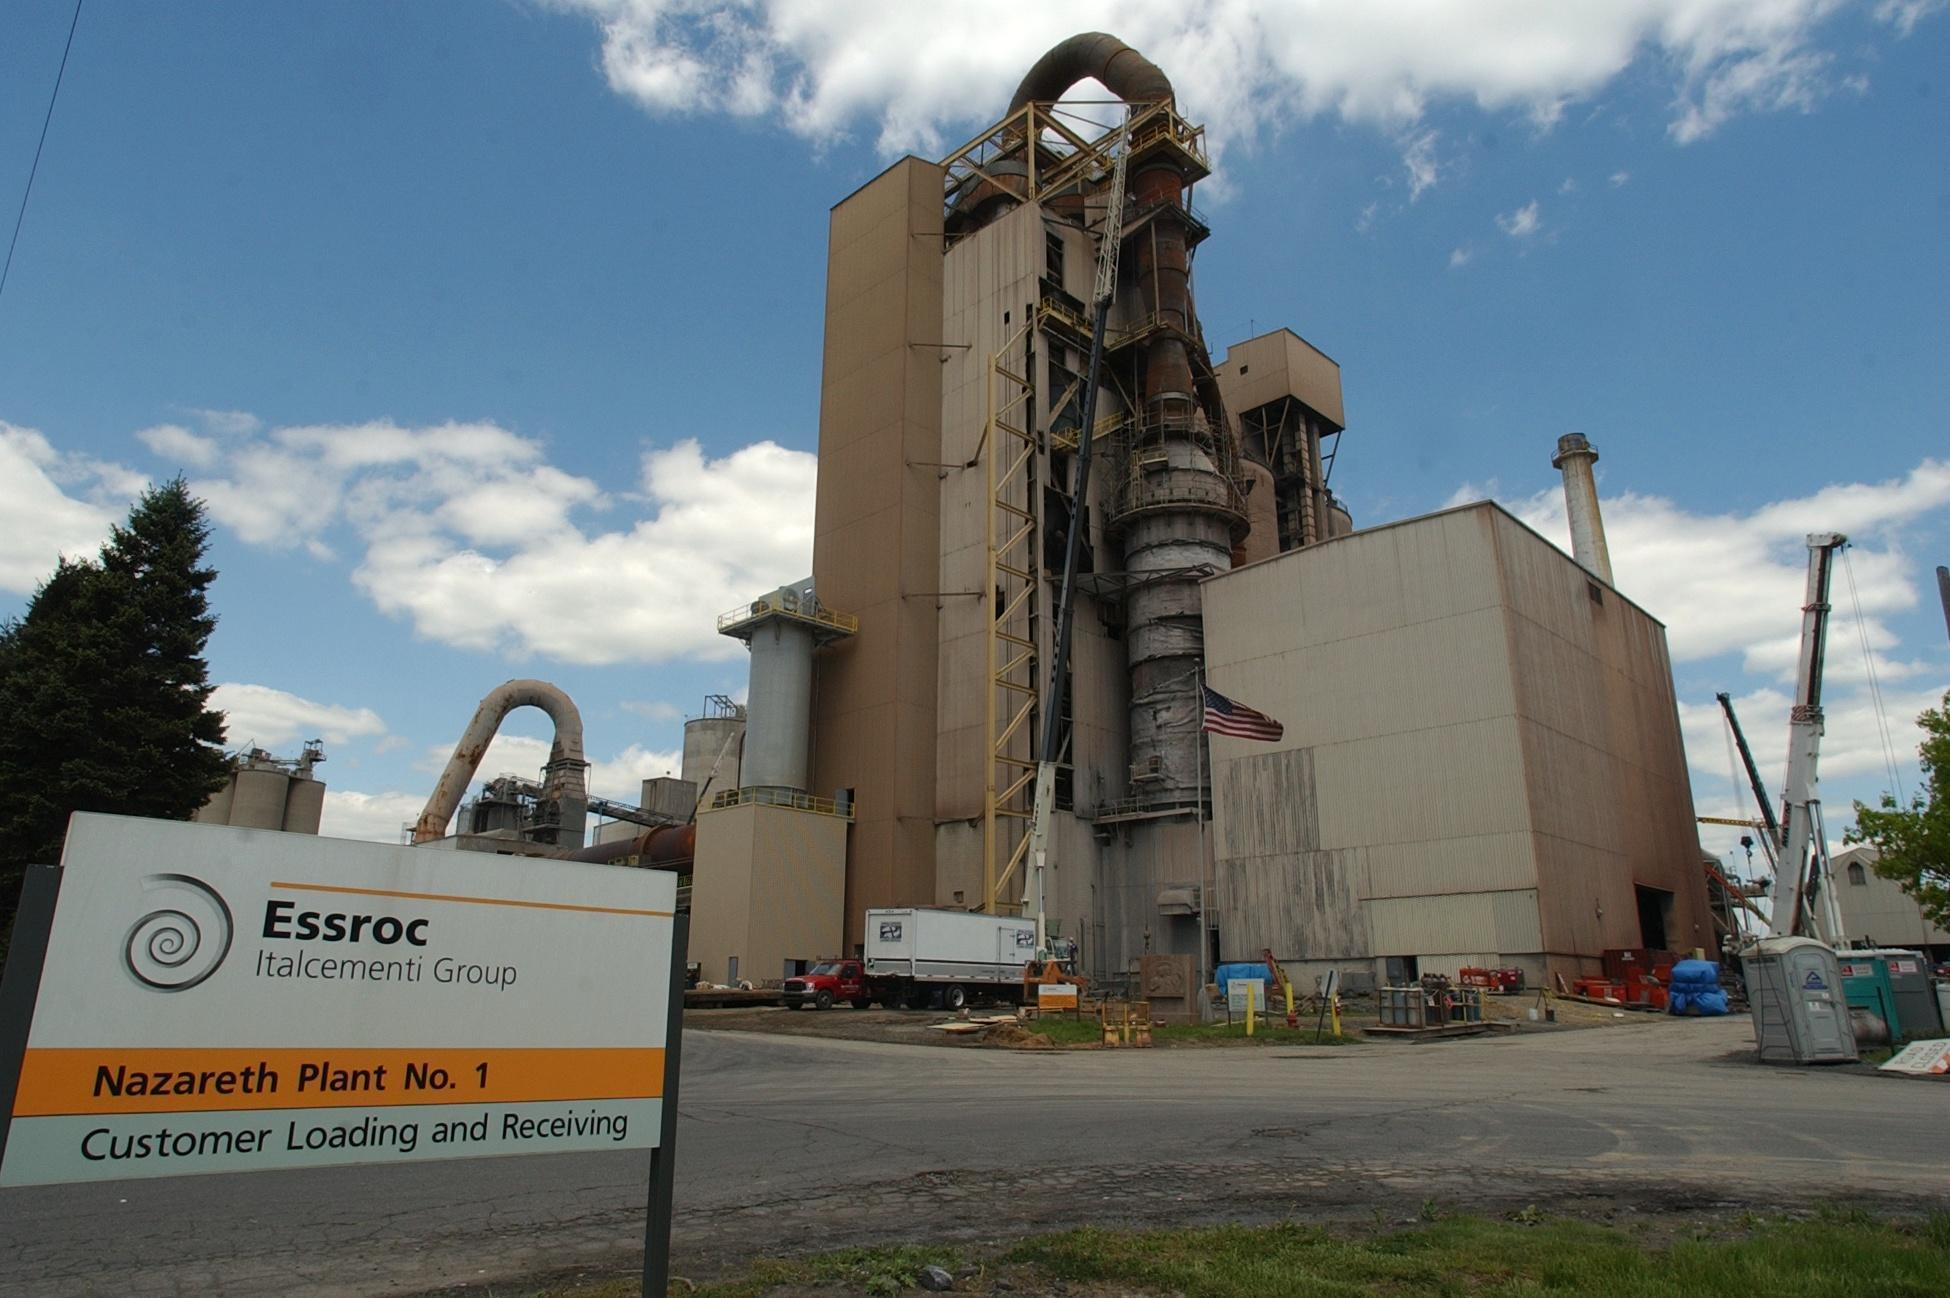 Lehigh Cement Slag : Essroc acquisition cements u s operations the morning call